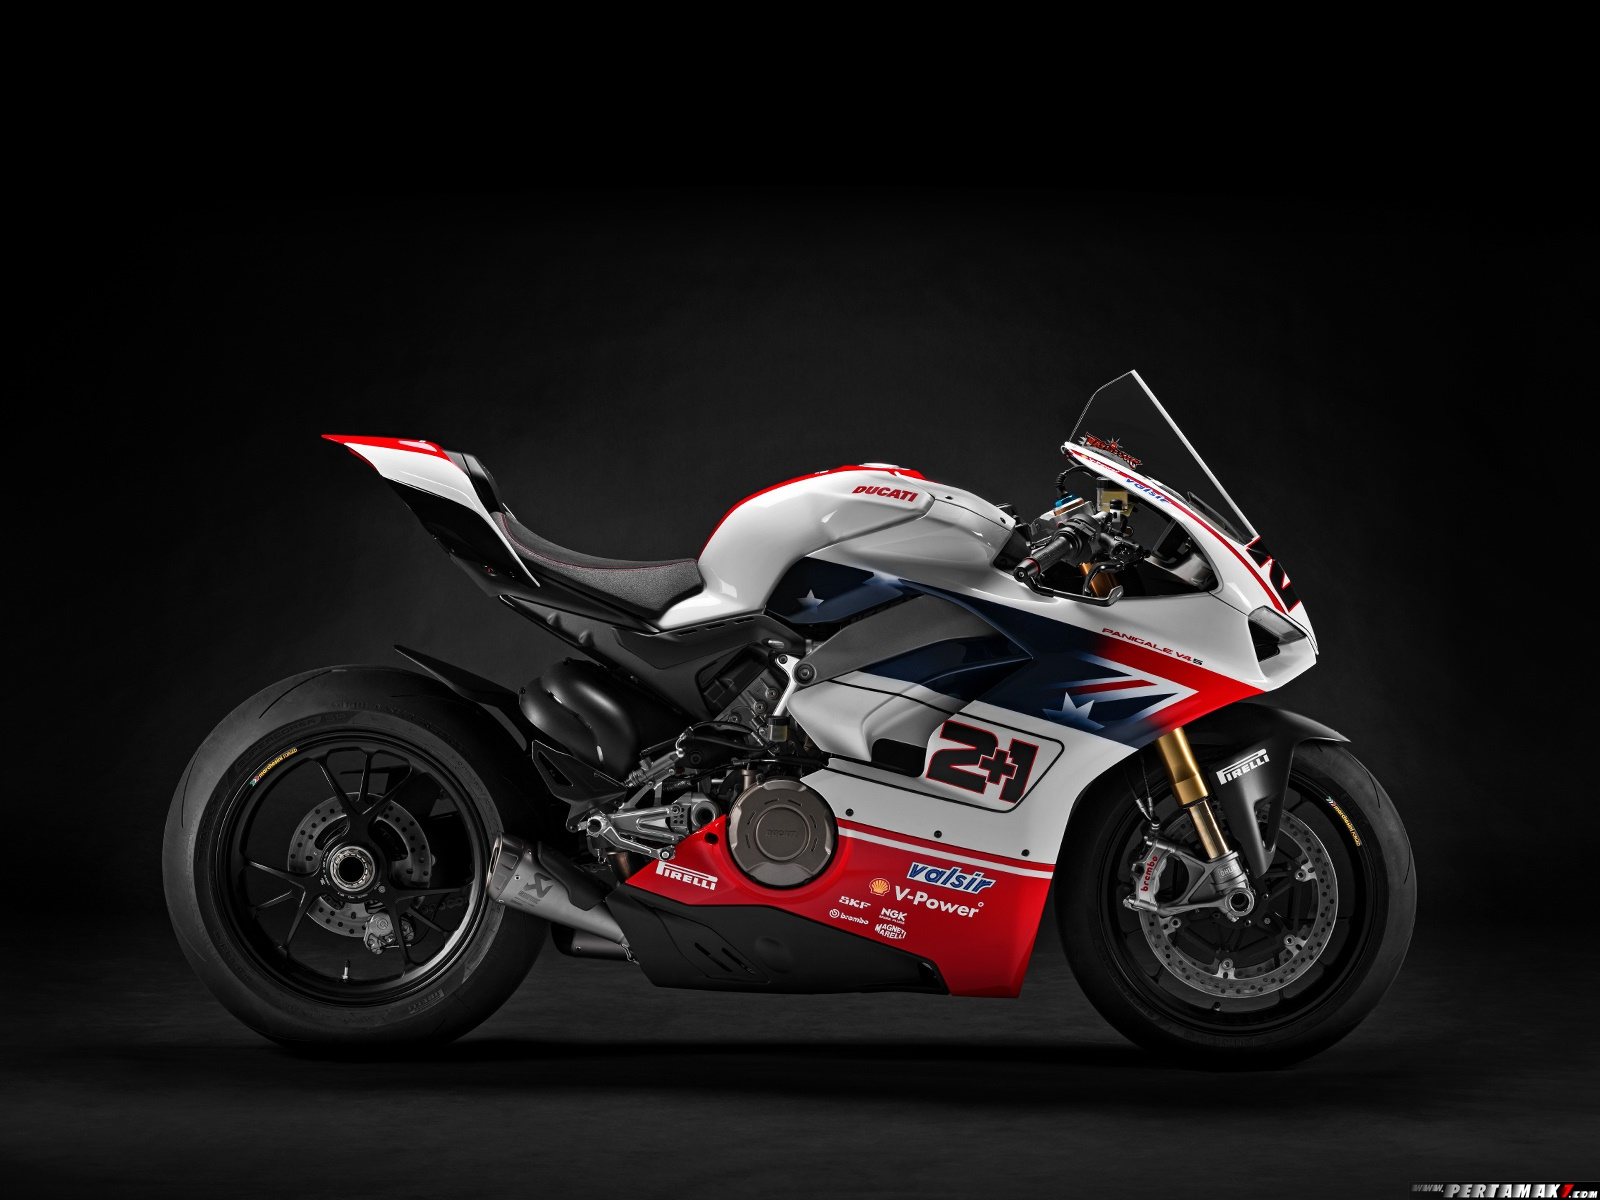 Ducati Panigale V4 S Troy Bayliss Race of Champions